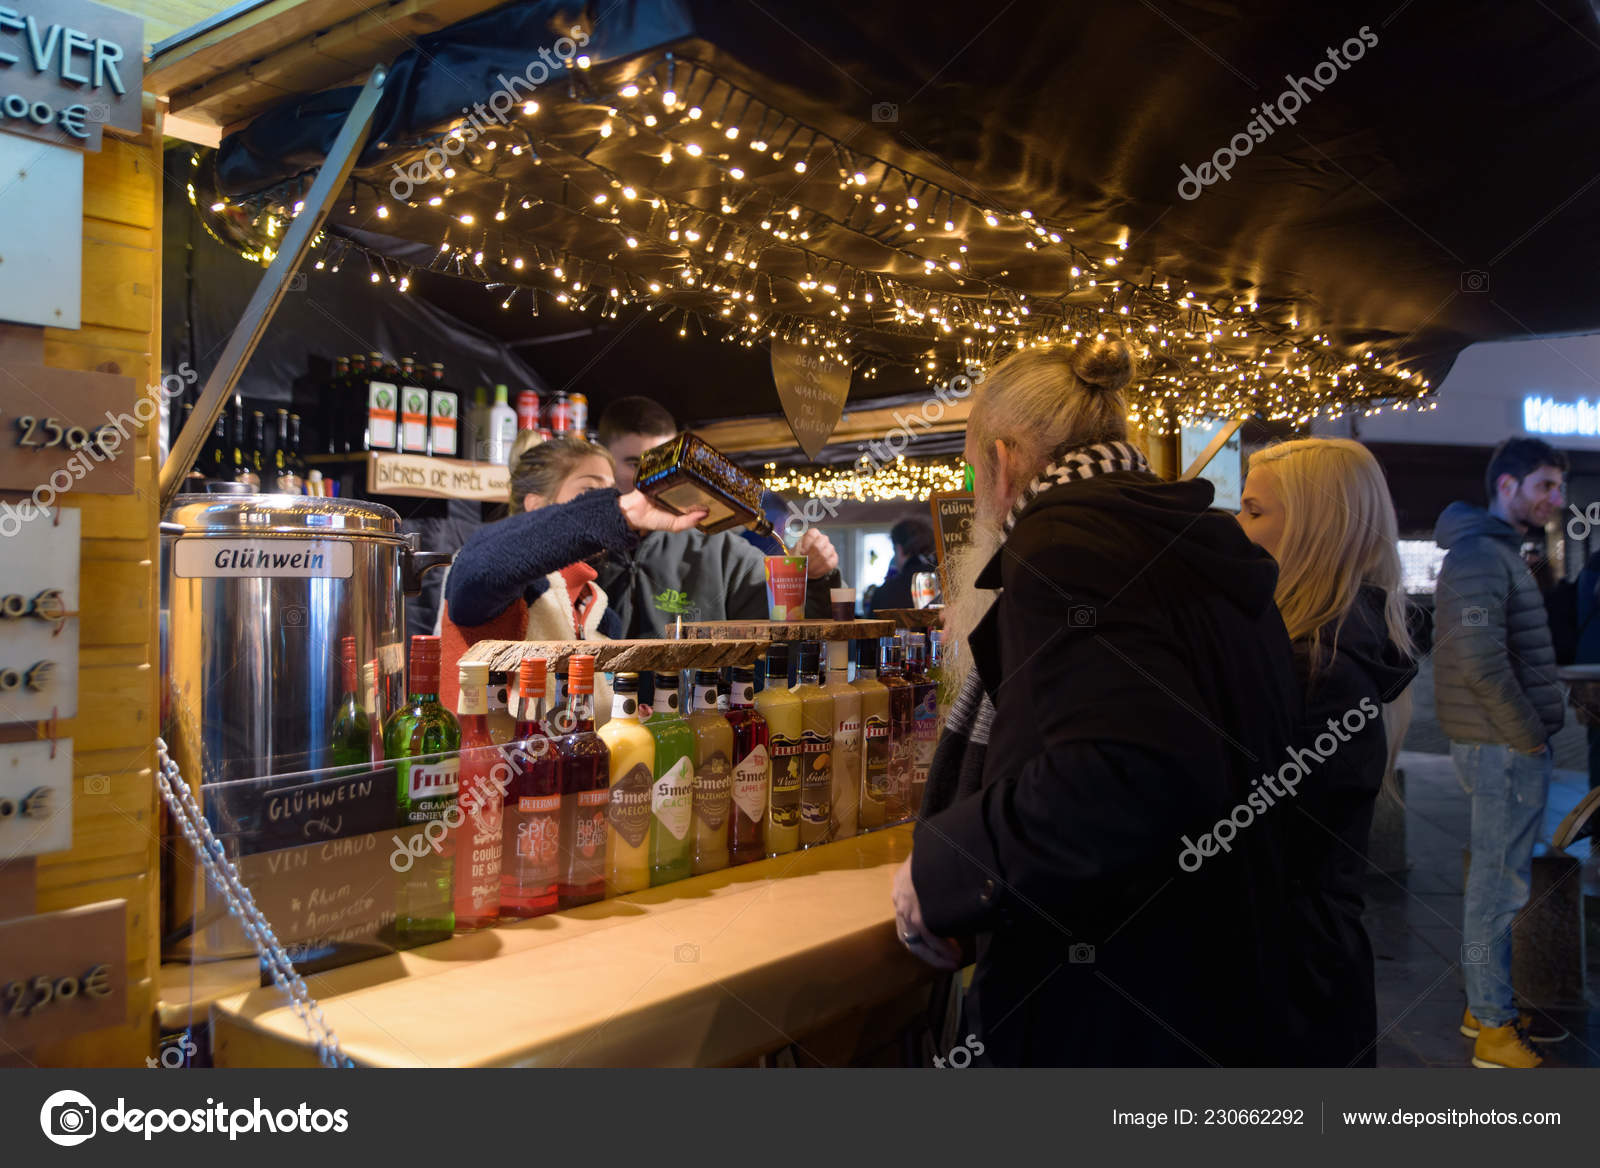 Mulled Wine Christmas Market.Vin Chaud Mulled Wine Stall 2018 Christmas Market Brussels